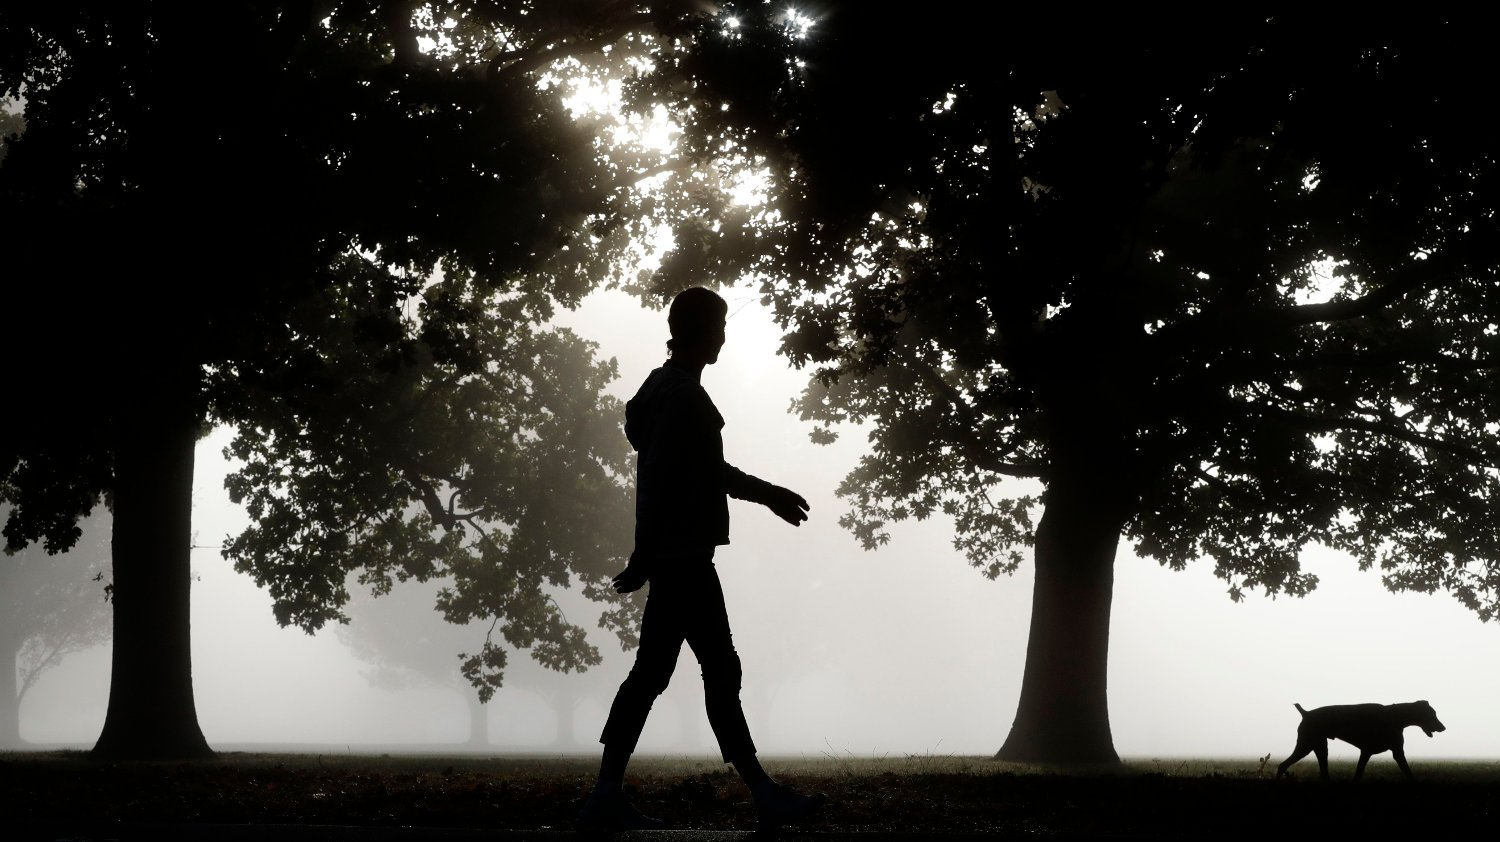 Virus Outbreak New Zealand A woman walks her dog through Hagley Park in Christchurch, New Zealand, Thursday, March 26, 2020. New Zealand has declared a state of emergency as the unprecedented 28 day day lockdown began in a bid to stop the spread of the coronavirus. The new coronavirus causes mild or moderate symptoms for most people, but for some, especially older adults and people with existing health problems, it can cause more severe illness or death.